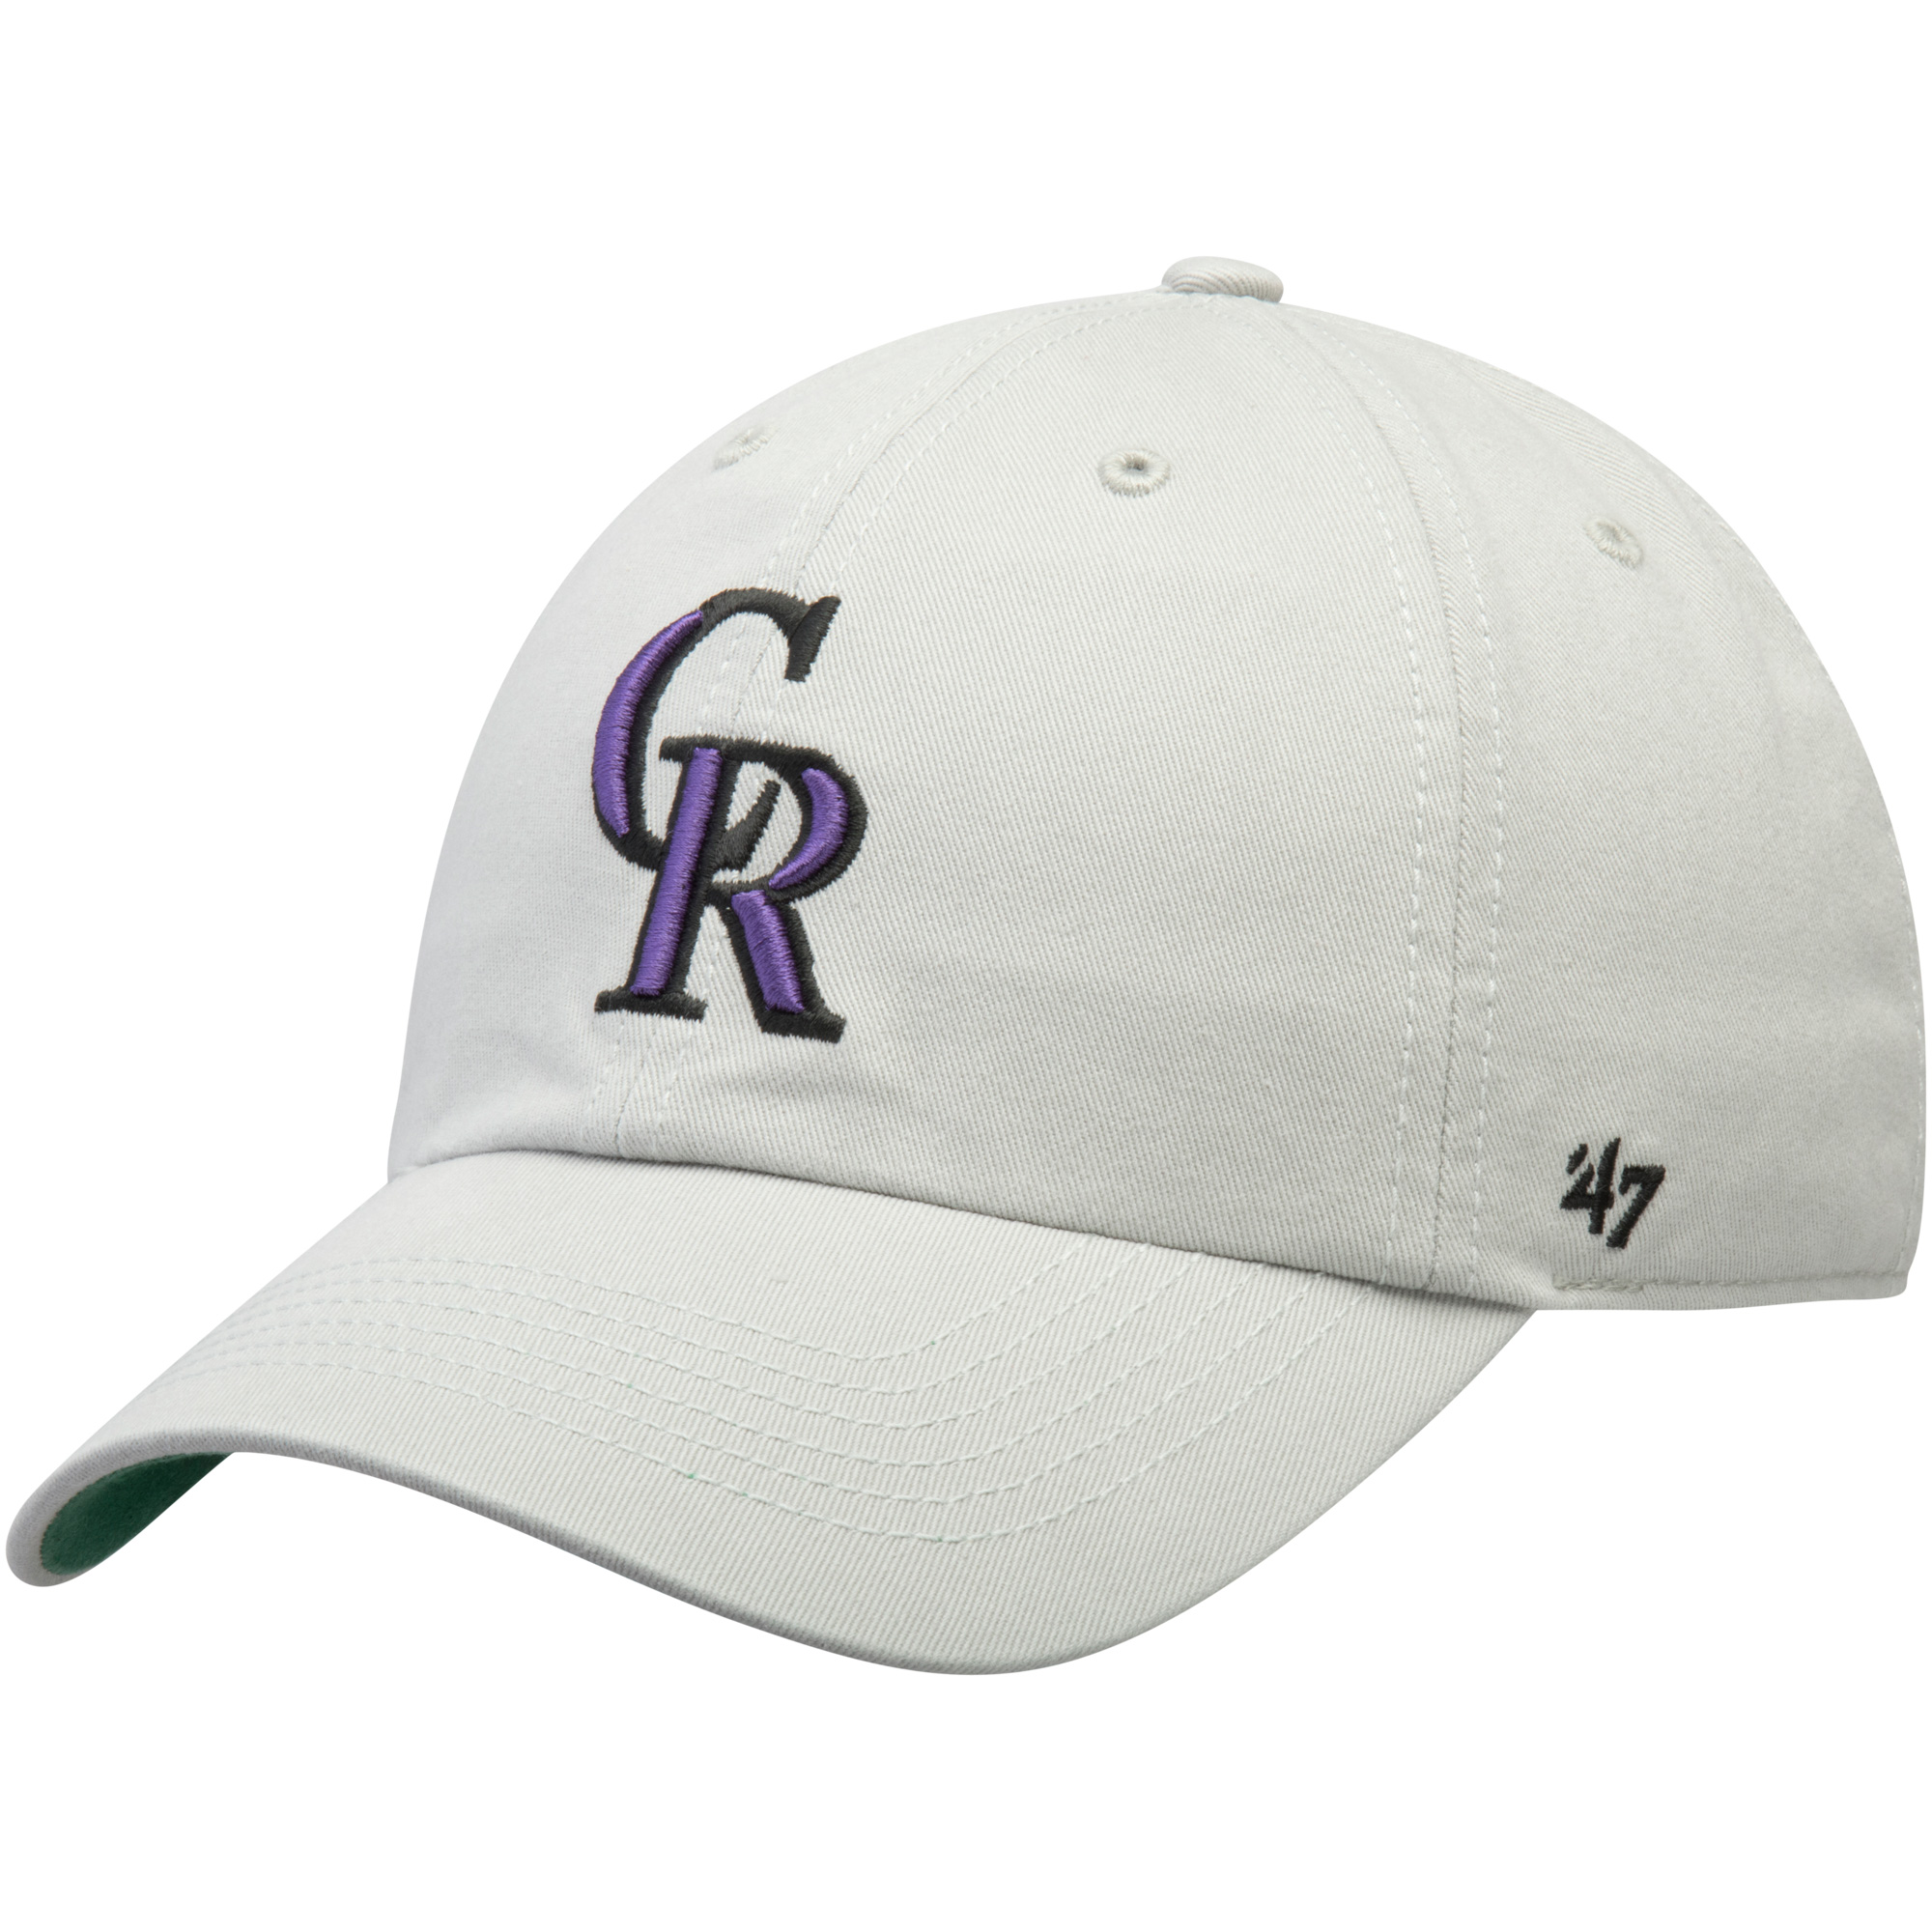 bb4b753ce73ee ... australia colorado rockies 47 primary logo franchise fitted hat gray  walmart aa471 f5d18